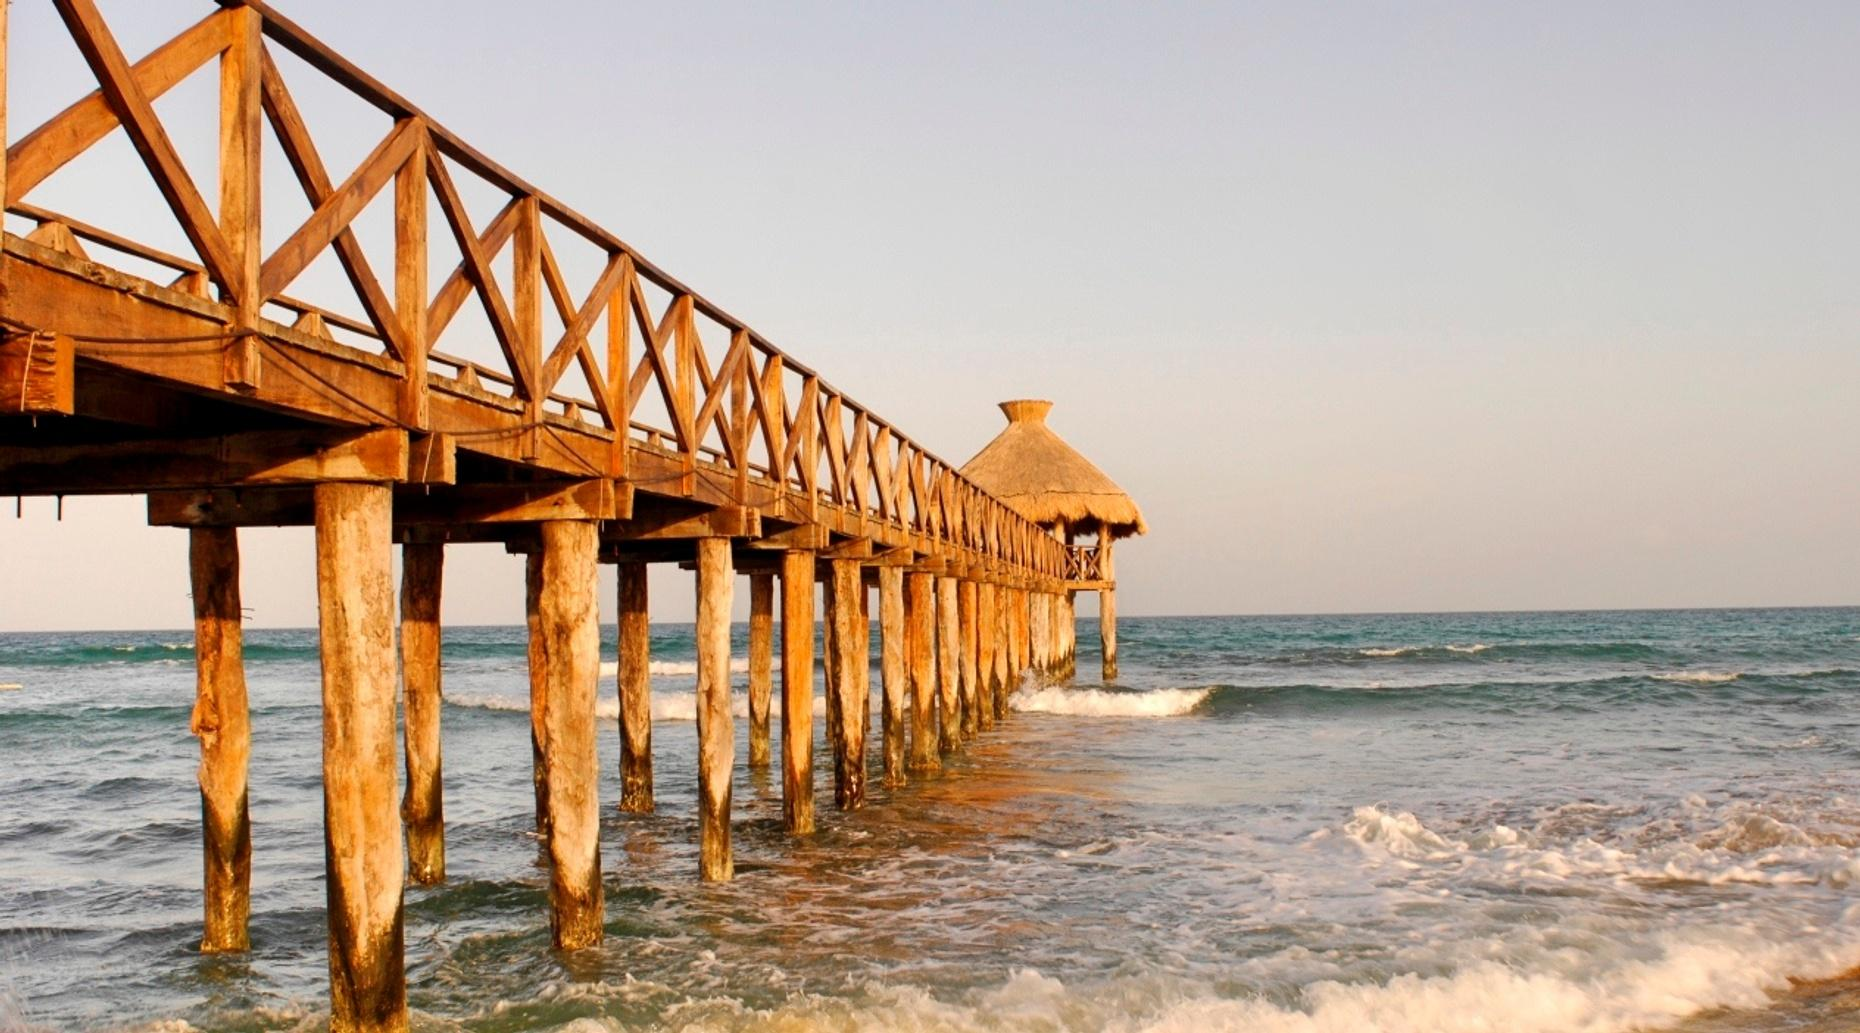 Round-Trip Transportation to Playa del Carmen from Cancun